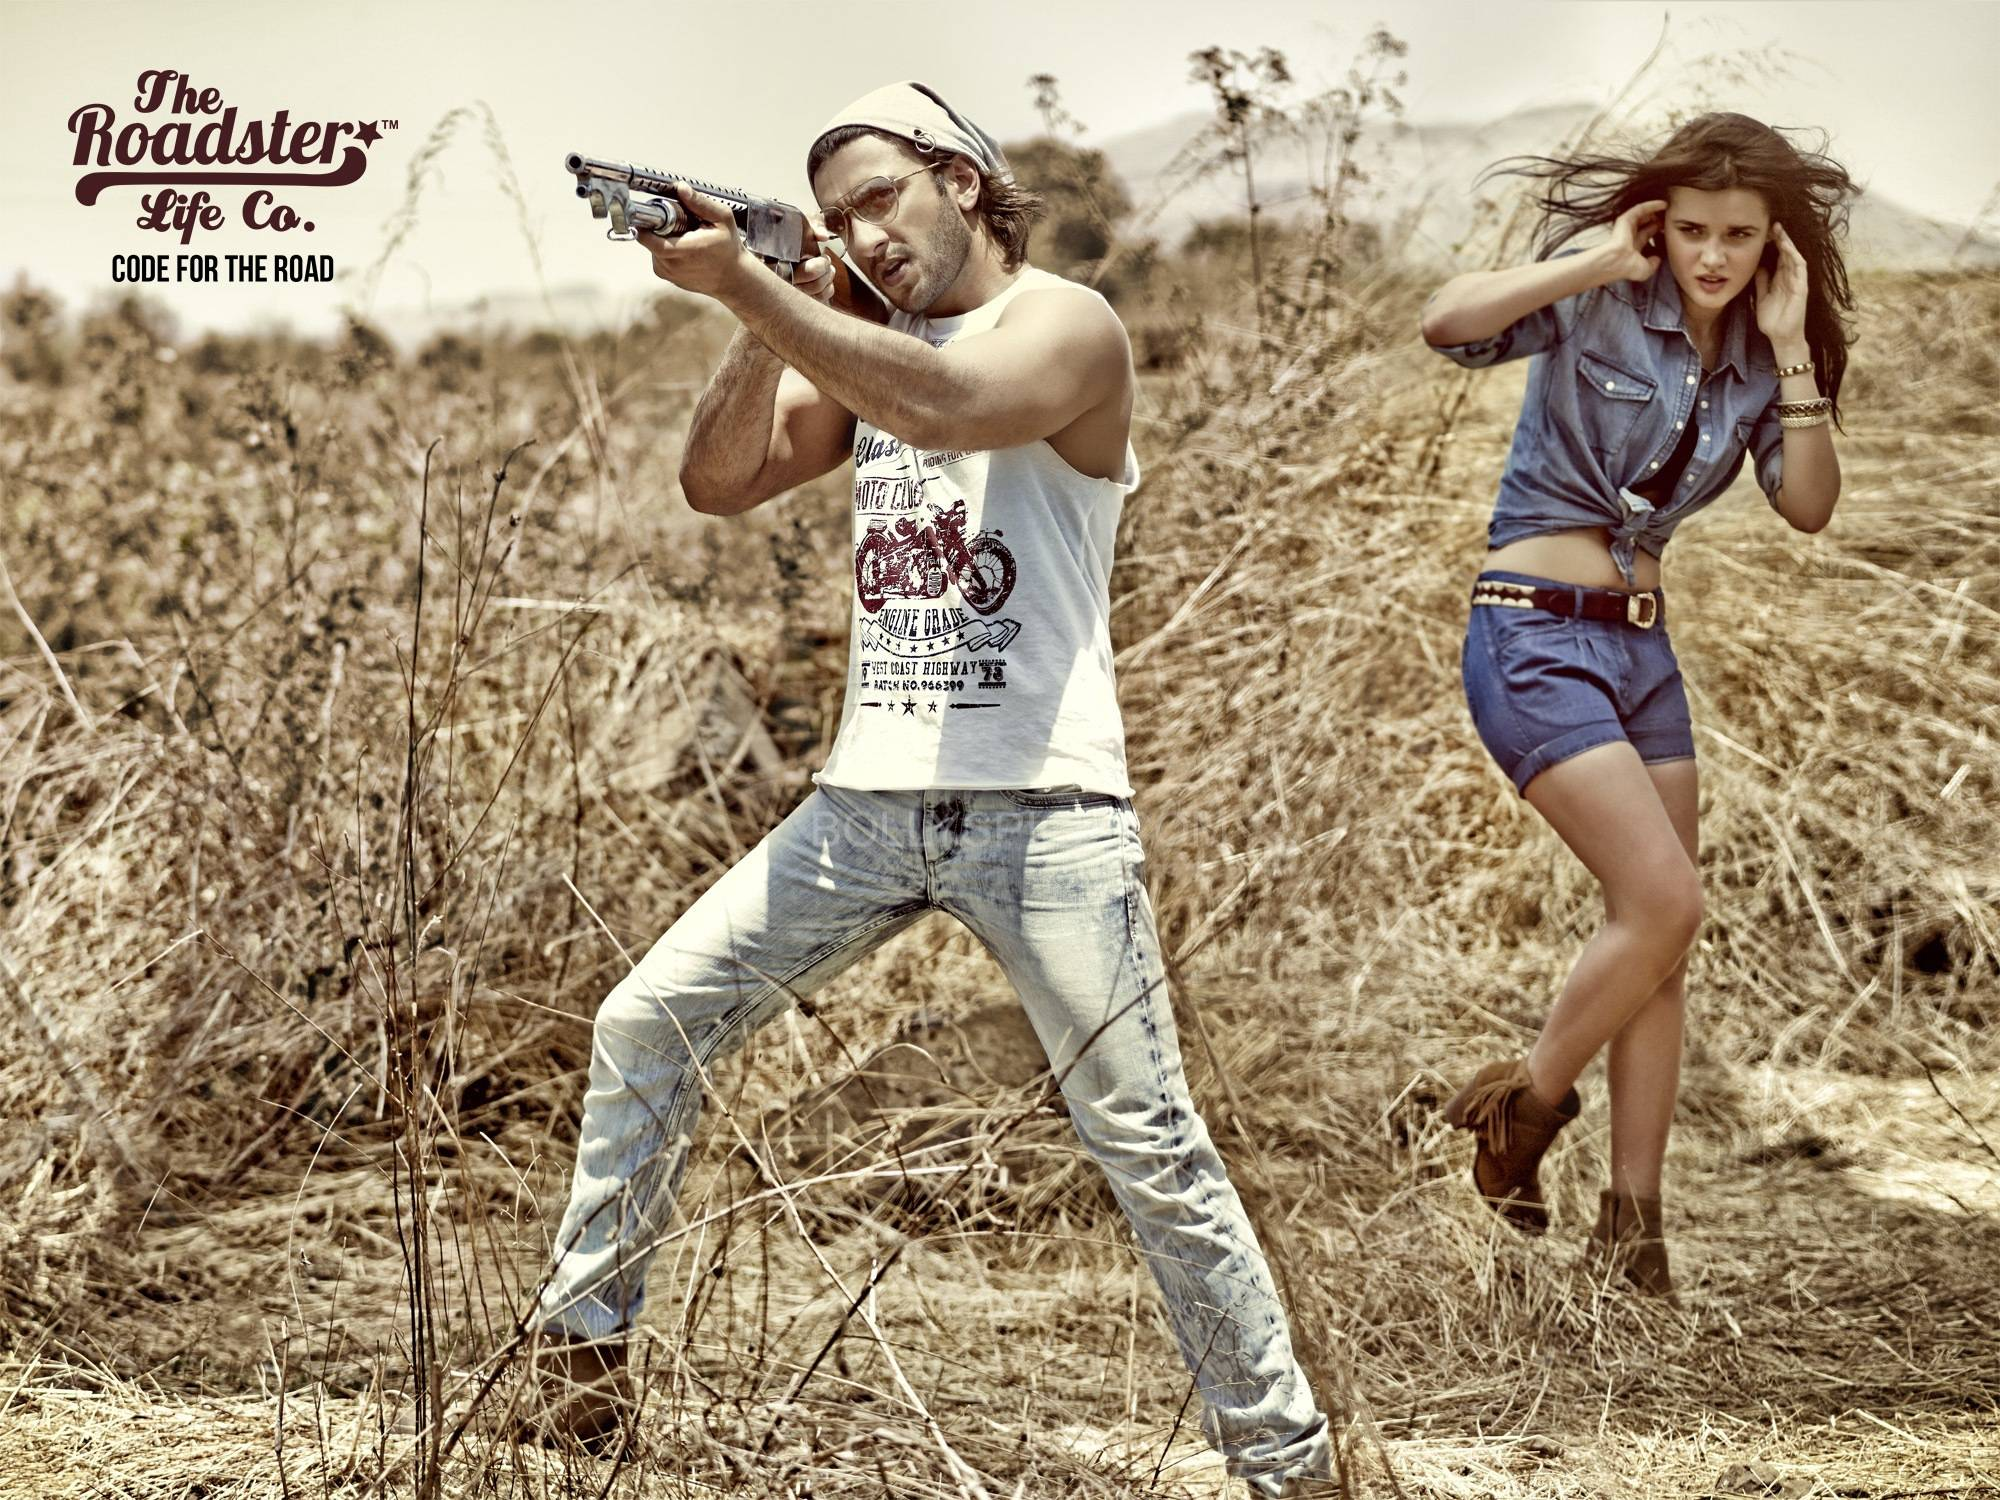 RaNVEERSINGHMYNTRA2 Myntra.com ropes In Ranveer Singh as the Brand Ambassador for Roadster